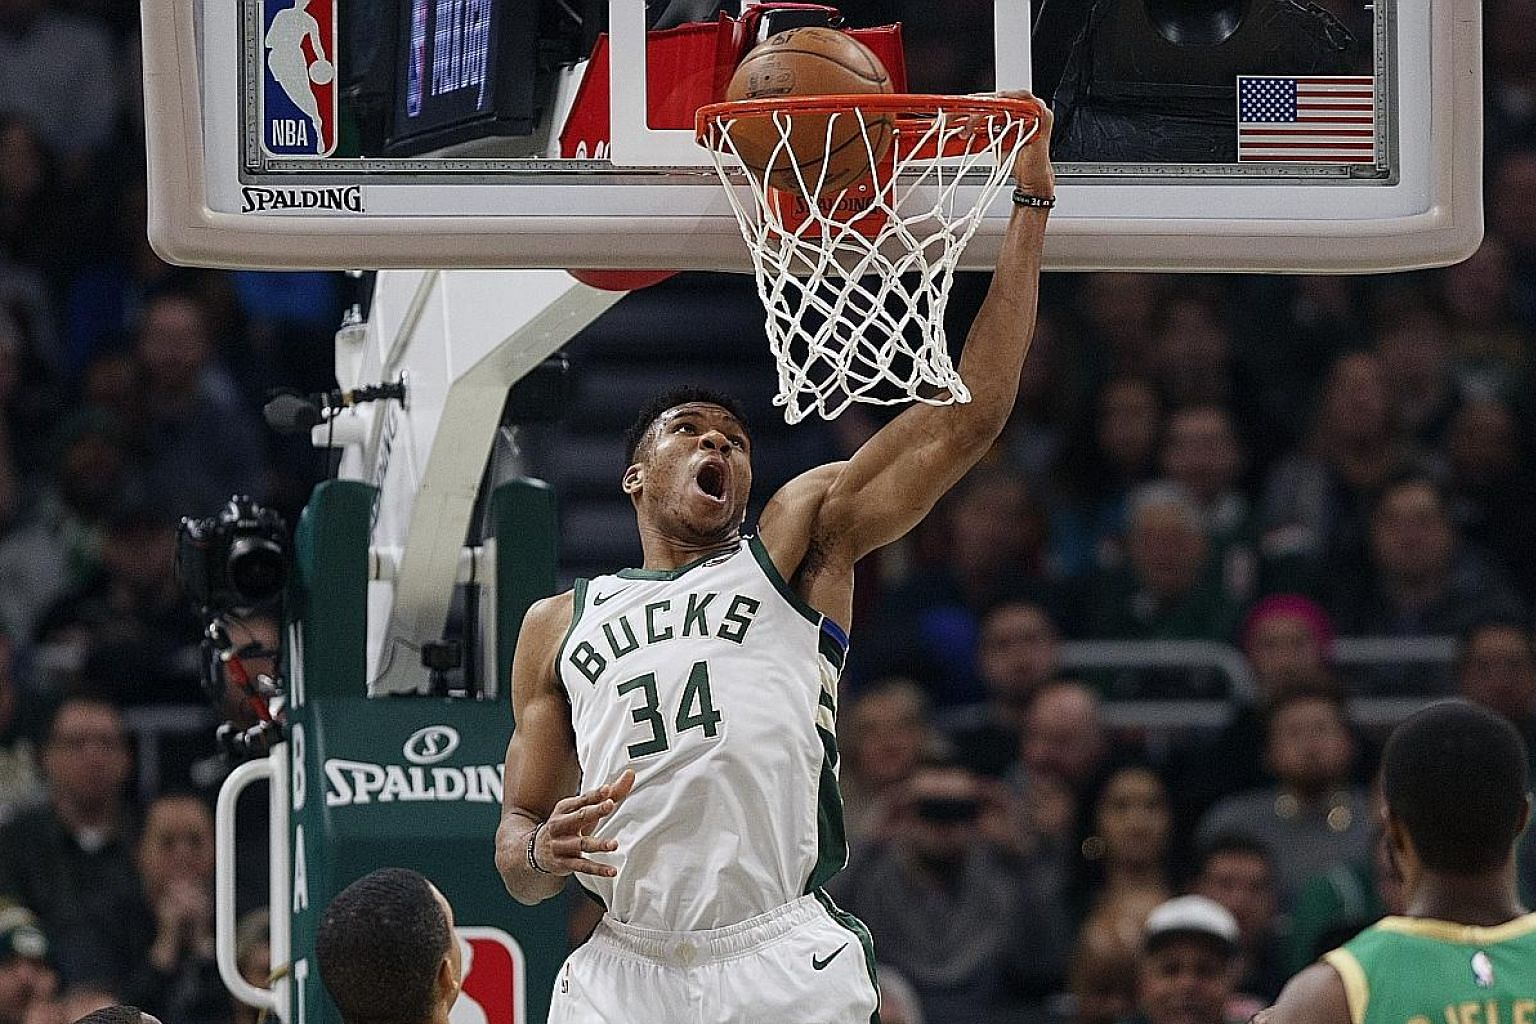 NBA MVP Giannis Antetokounmpo downing two of his 32 points in the Milwaukee Bucks' 128-123 win over the Boston Celtics on Thursday, which extended the Eastern Conference leaders' winning streak to five games.